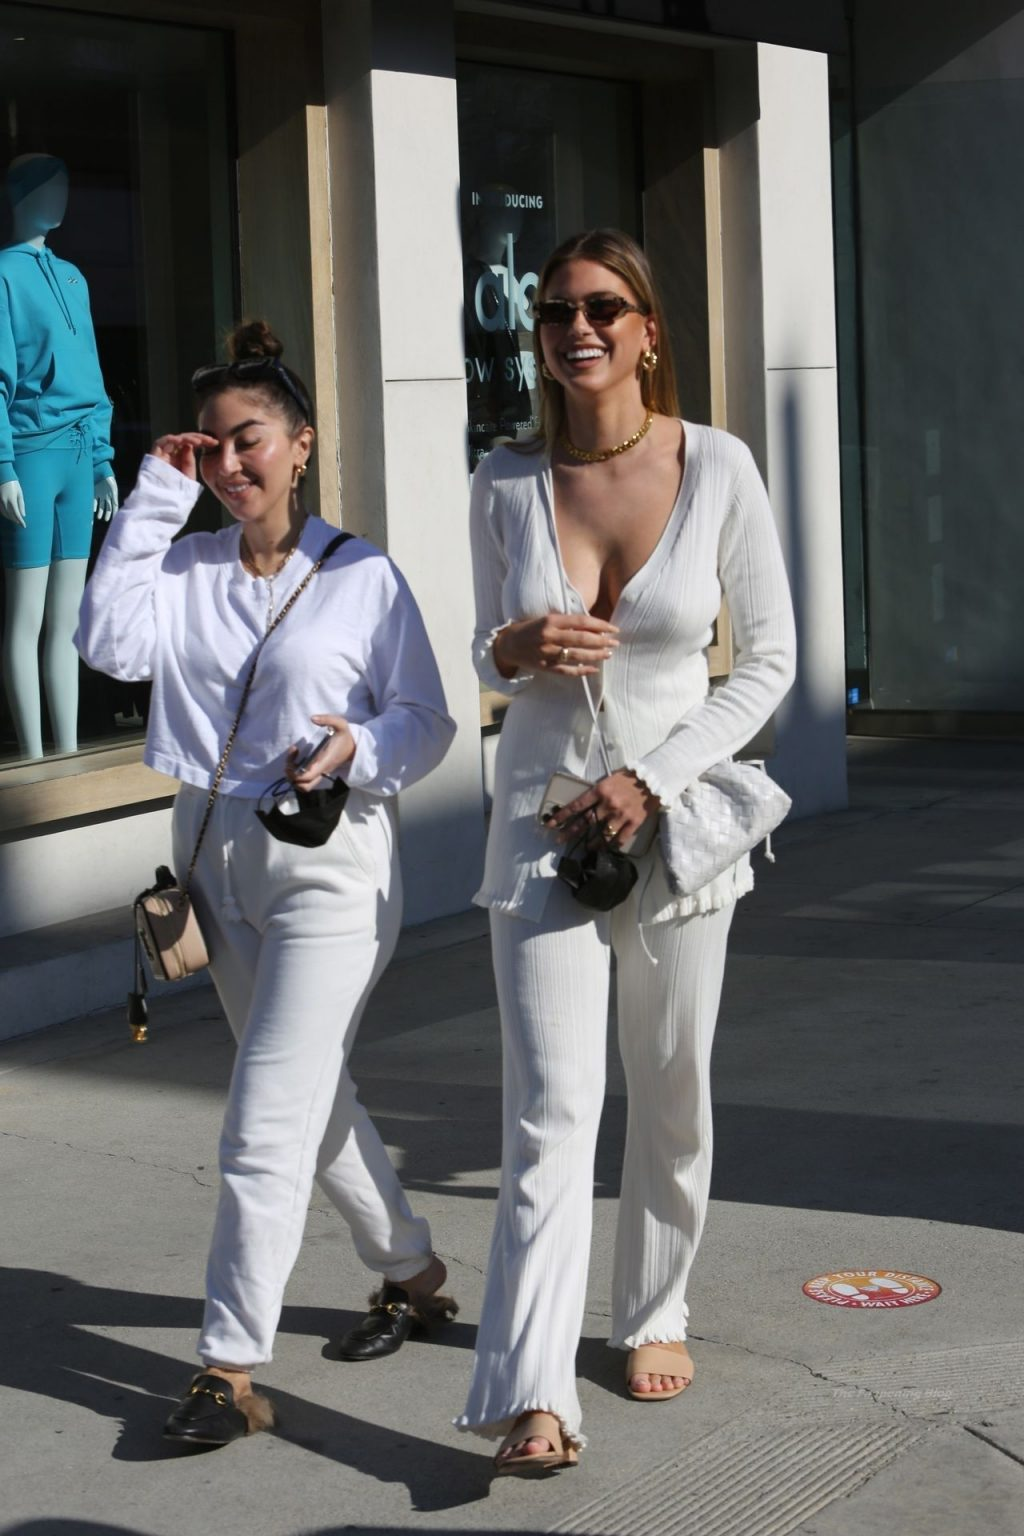 Kara Del Toro is Seen Braless in All-white While Out Shopping (33 Photos)